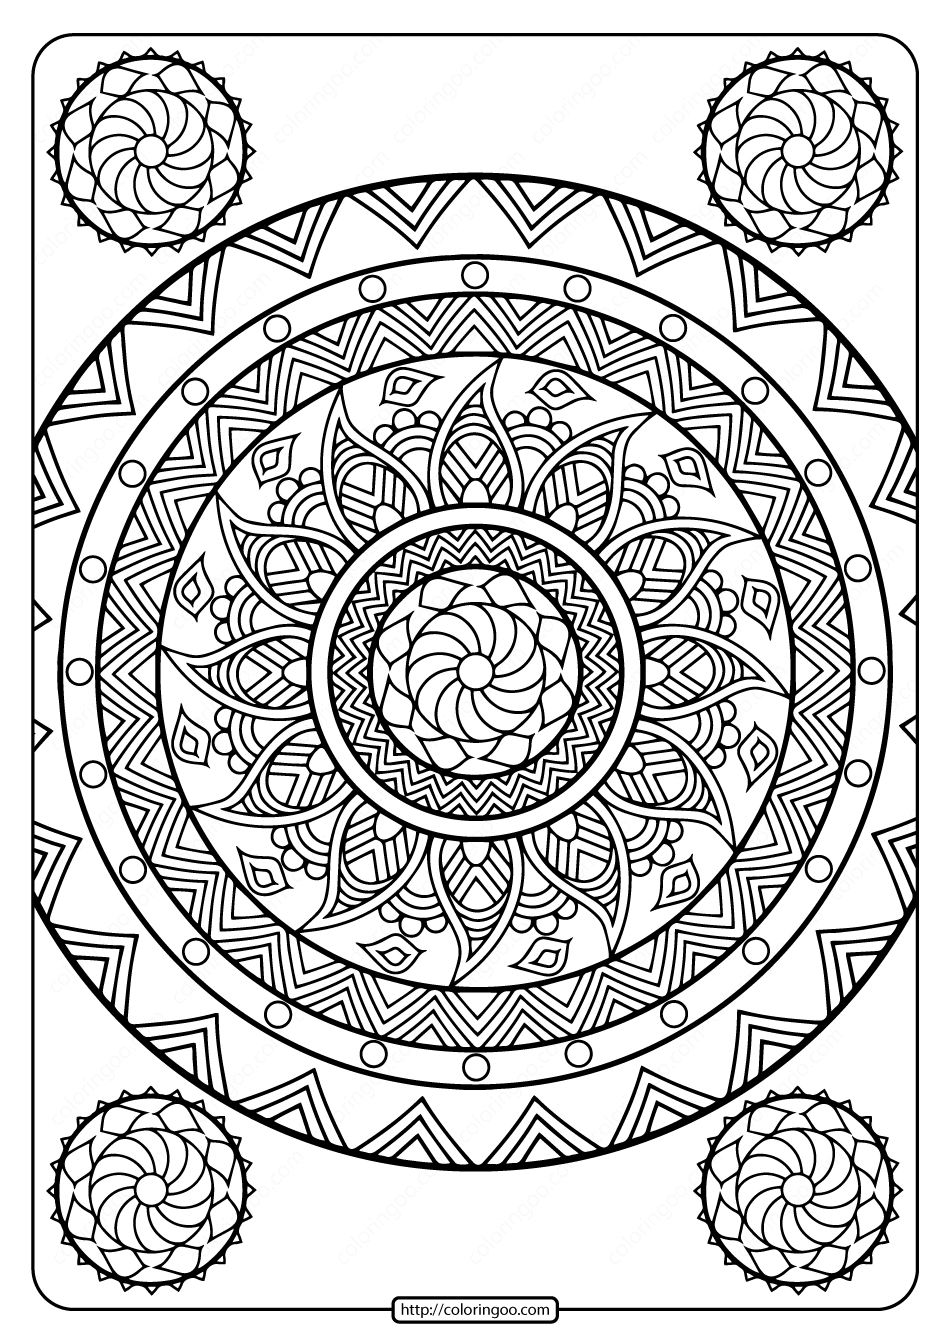 Printable Floral Mandala PDF Coloring Pages 31